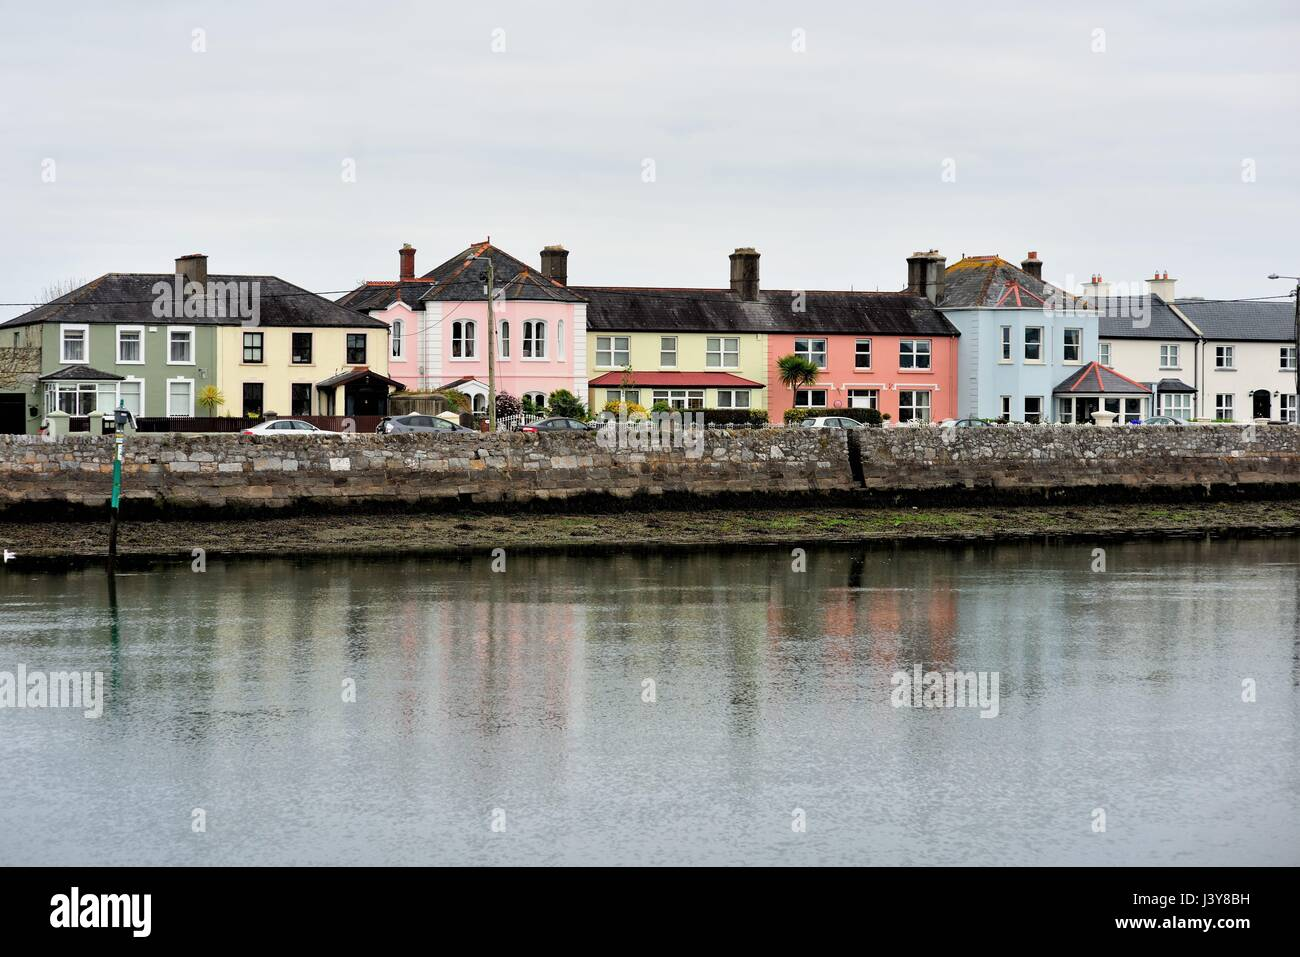 067beeed4a8bd Colorful homes and buildings lining a portion of Dungarvan Harbor in the  Irish coastal community of